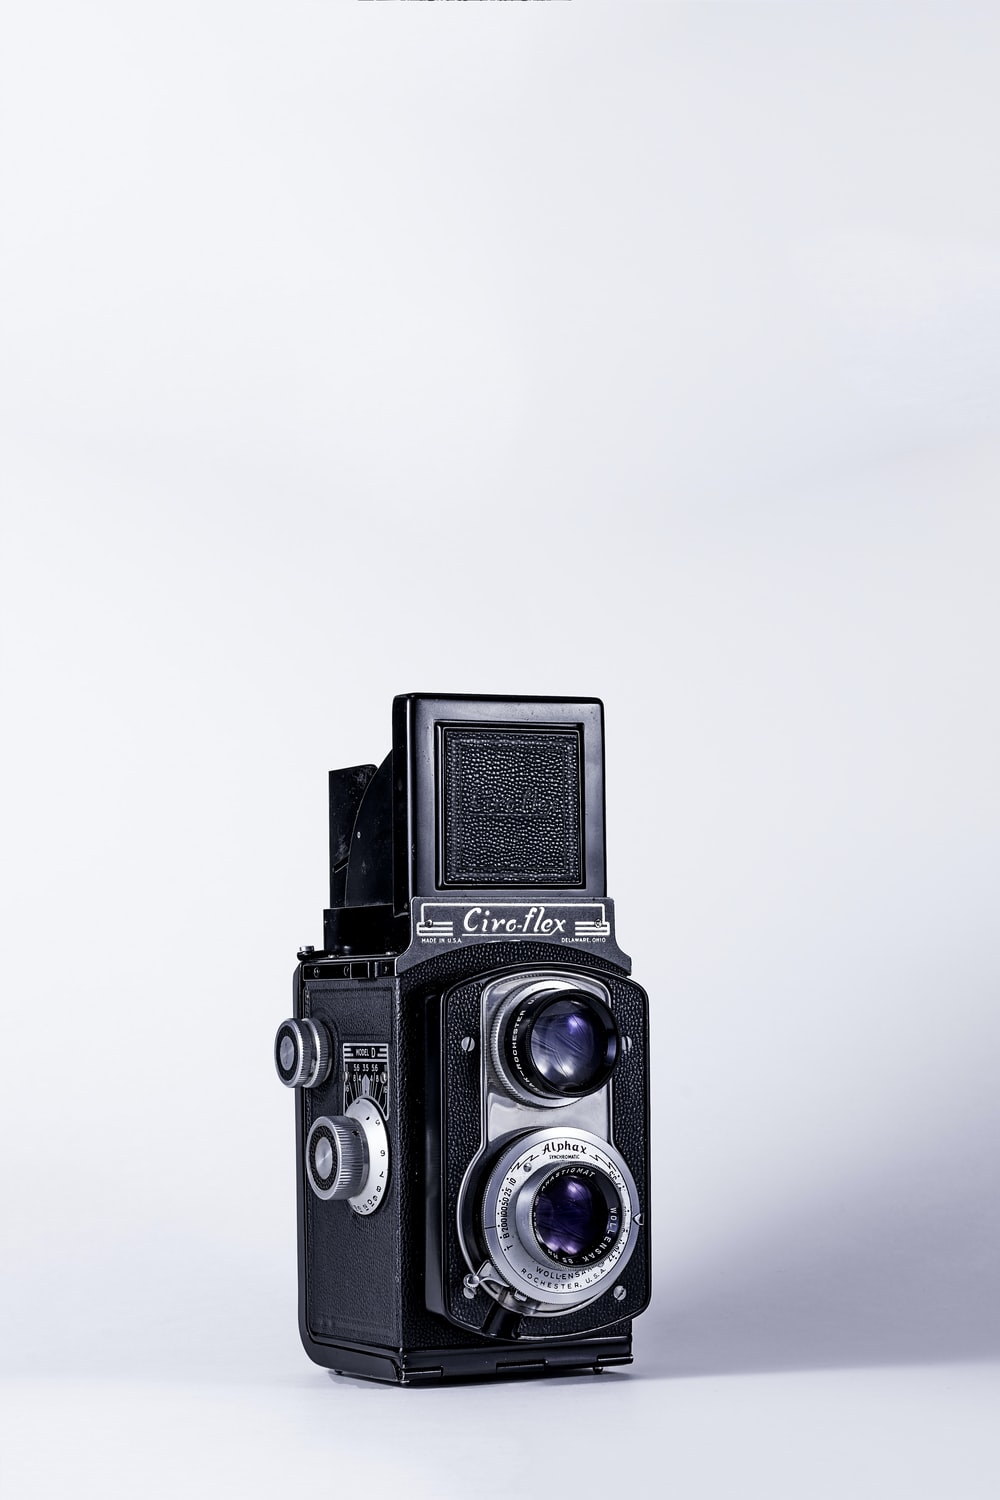 Black and gray camera on white surface